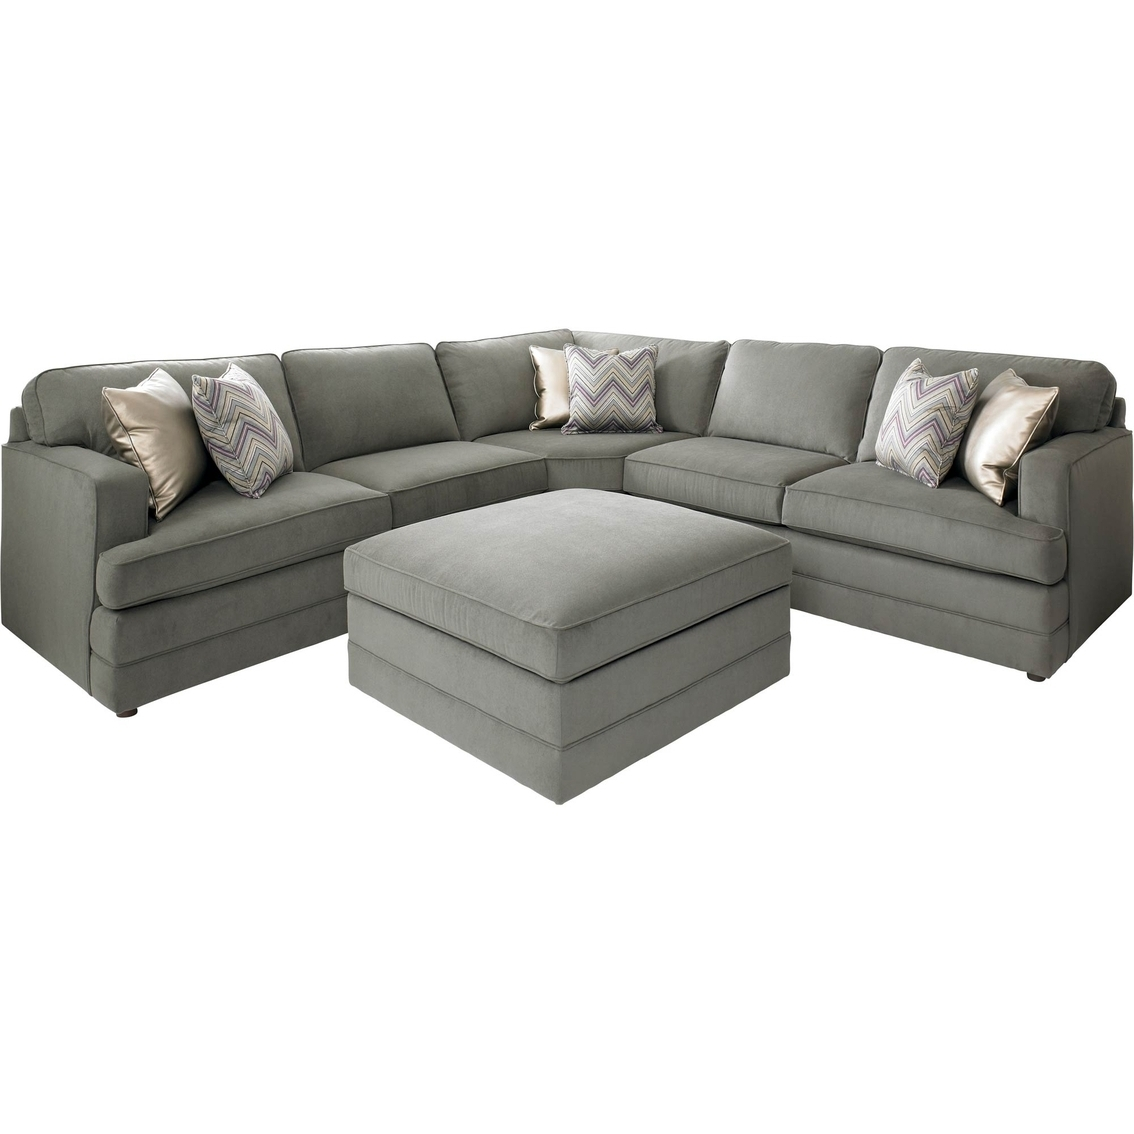 High Point Nc Sectional Sofas Throughout Well Known Bassett Dalton L Shaped Sectional Sofa With Ottoman (View 5 of 15)